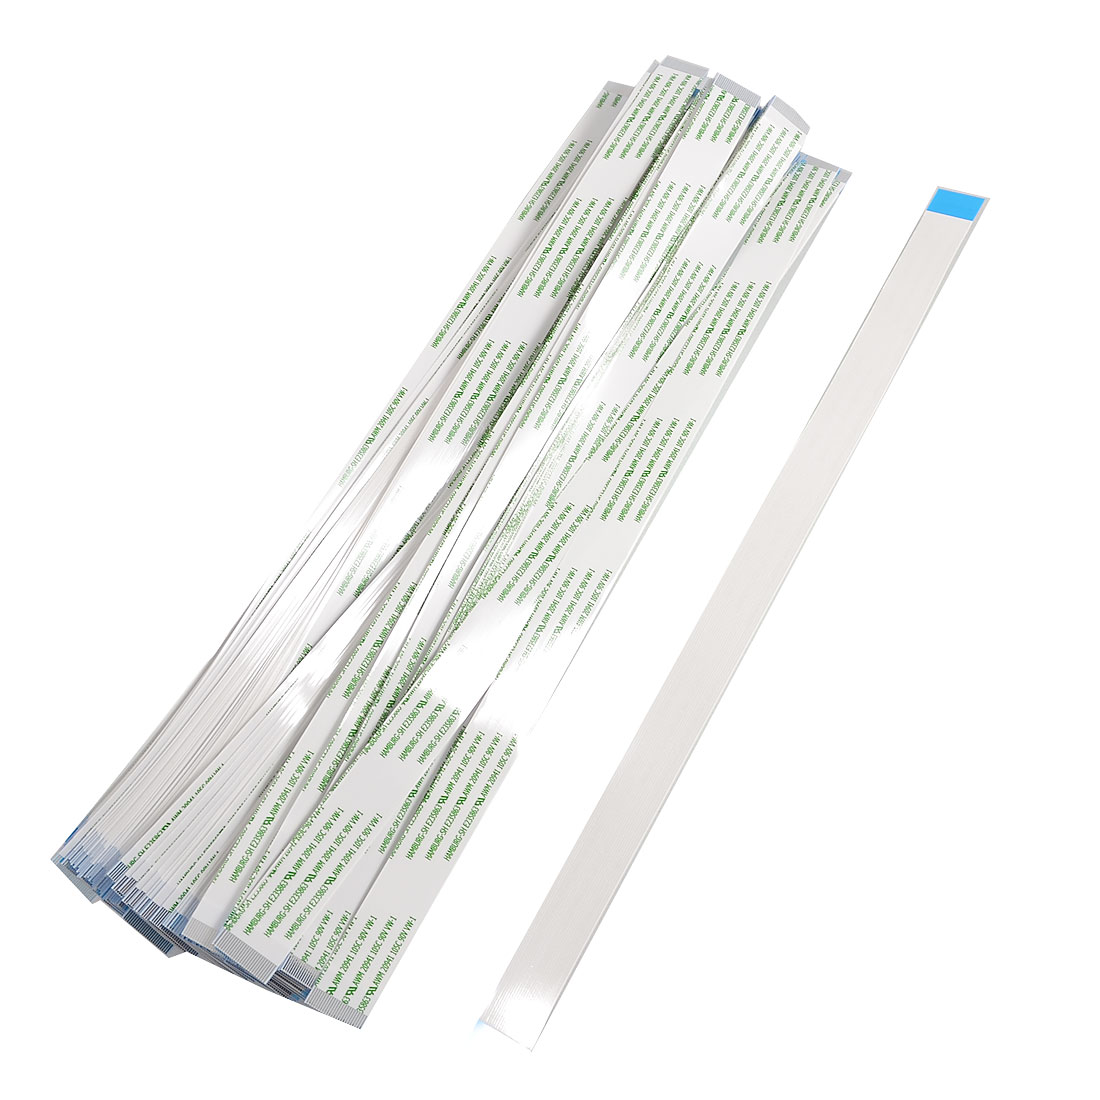 100x PC Printer 250mm Long 24 Pins A Type Flexible Flat Cables